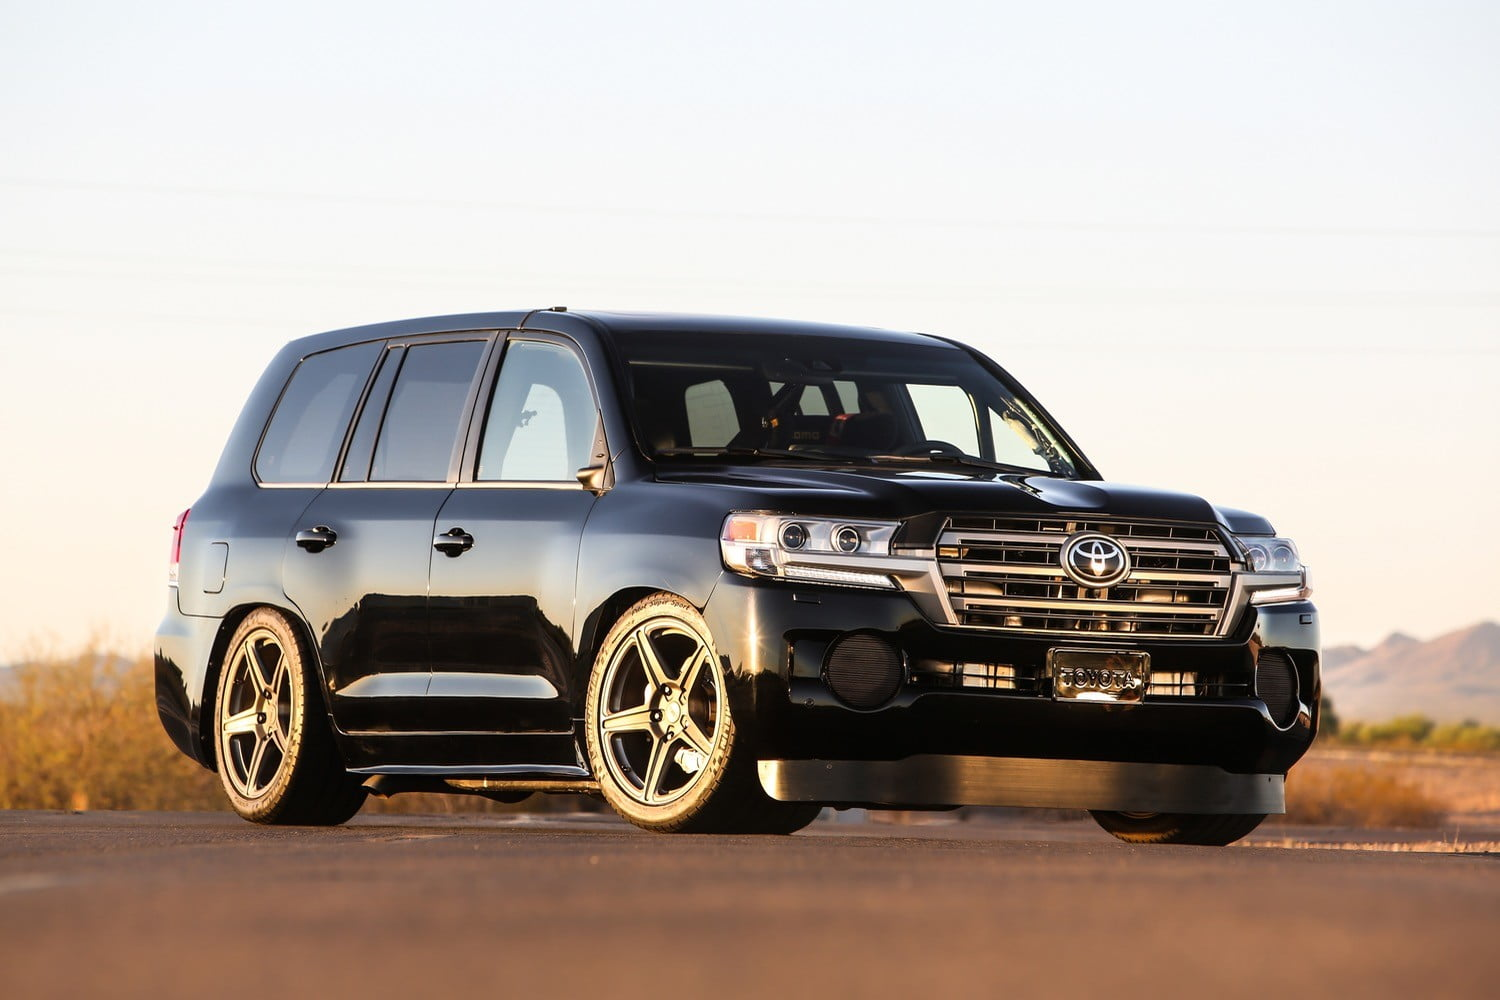 Toyota Land Speed Cruiser | Top Speed, World Record, News | Digital